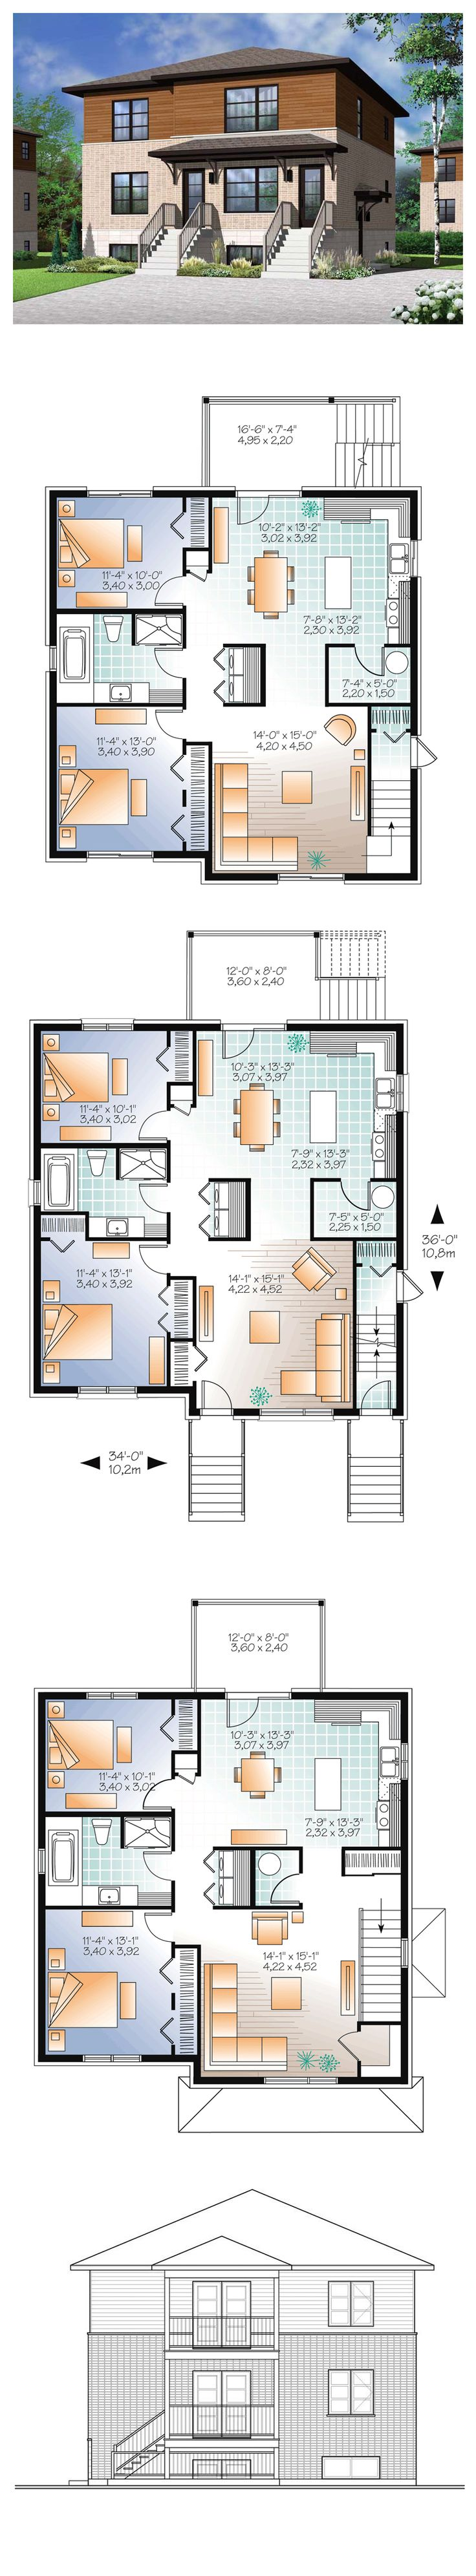 125 best images about duplex apartment plans on for Residential lease for apartment or unit in multi family